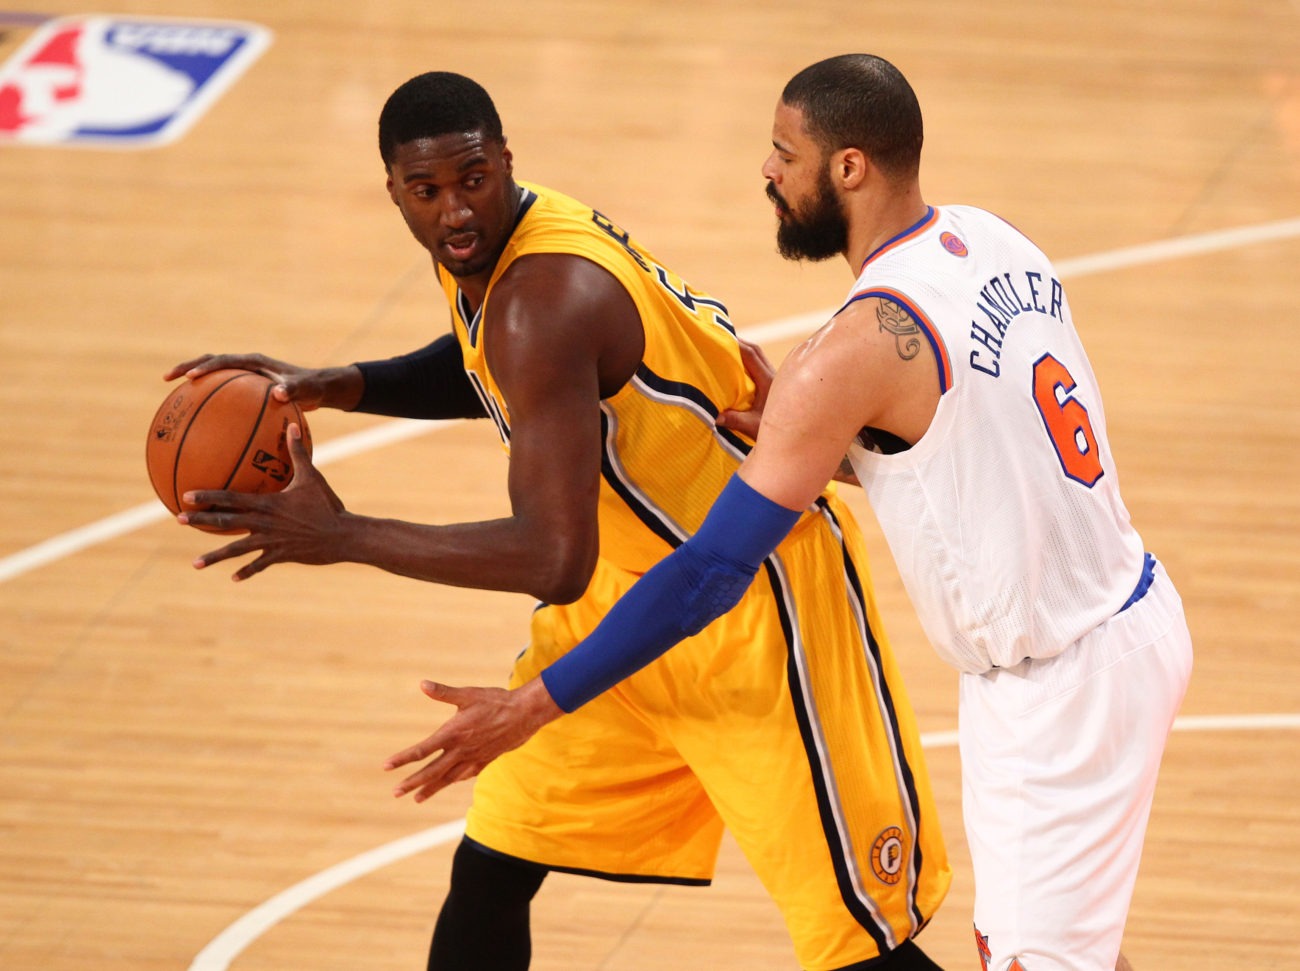 May 5, 2013; New York, NY, USA; Indiana Pacers center Roy Hibbert (55) is defended by New York Knicks center Tyson Chandler (6) during the first half at Madison Square Garden. Mandatory Credit: Danny Wild-USA TODAY Sports